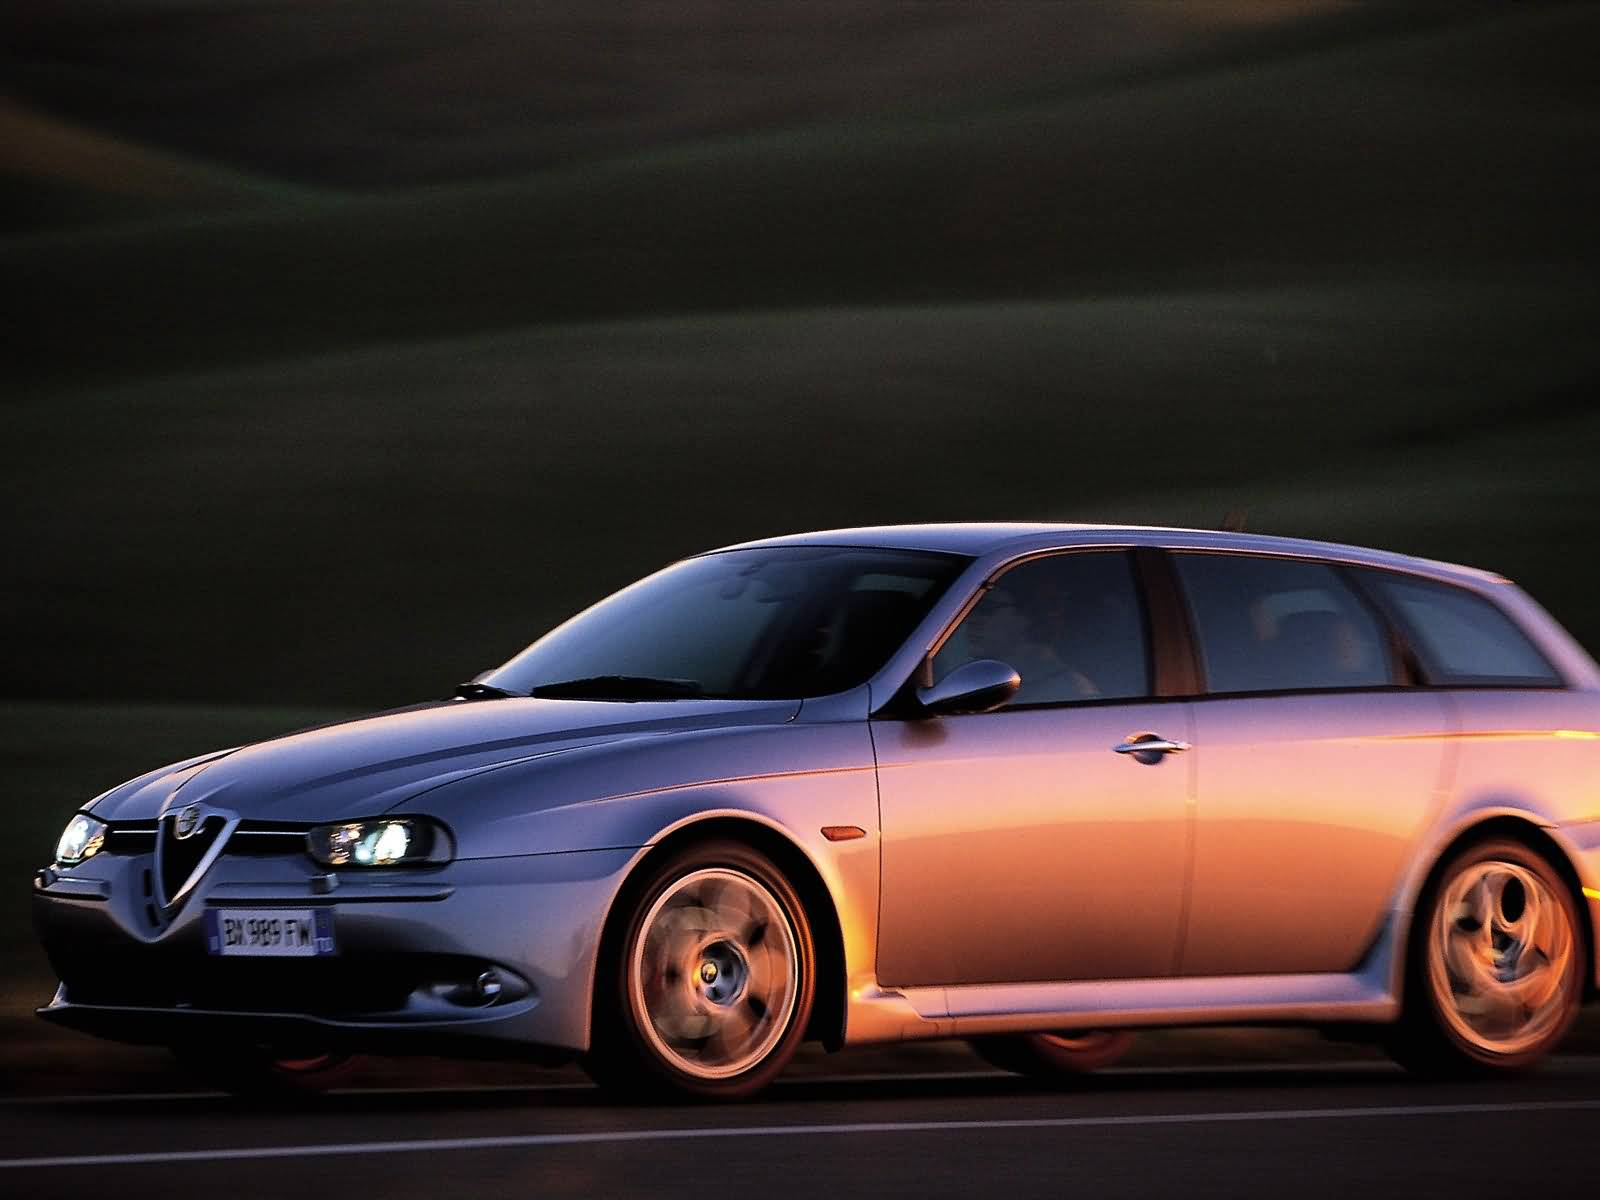 Very fast awesome Alfa Romeo 156 GTA Car on the road